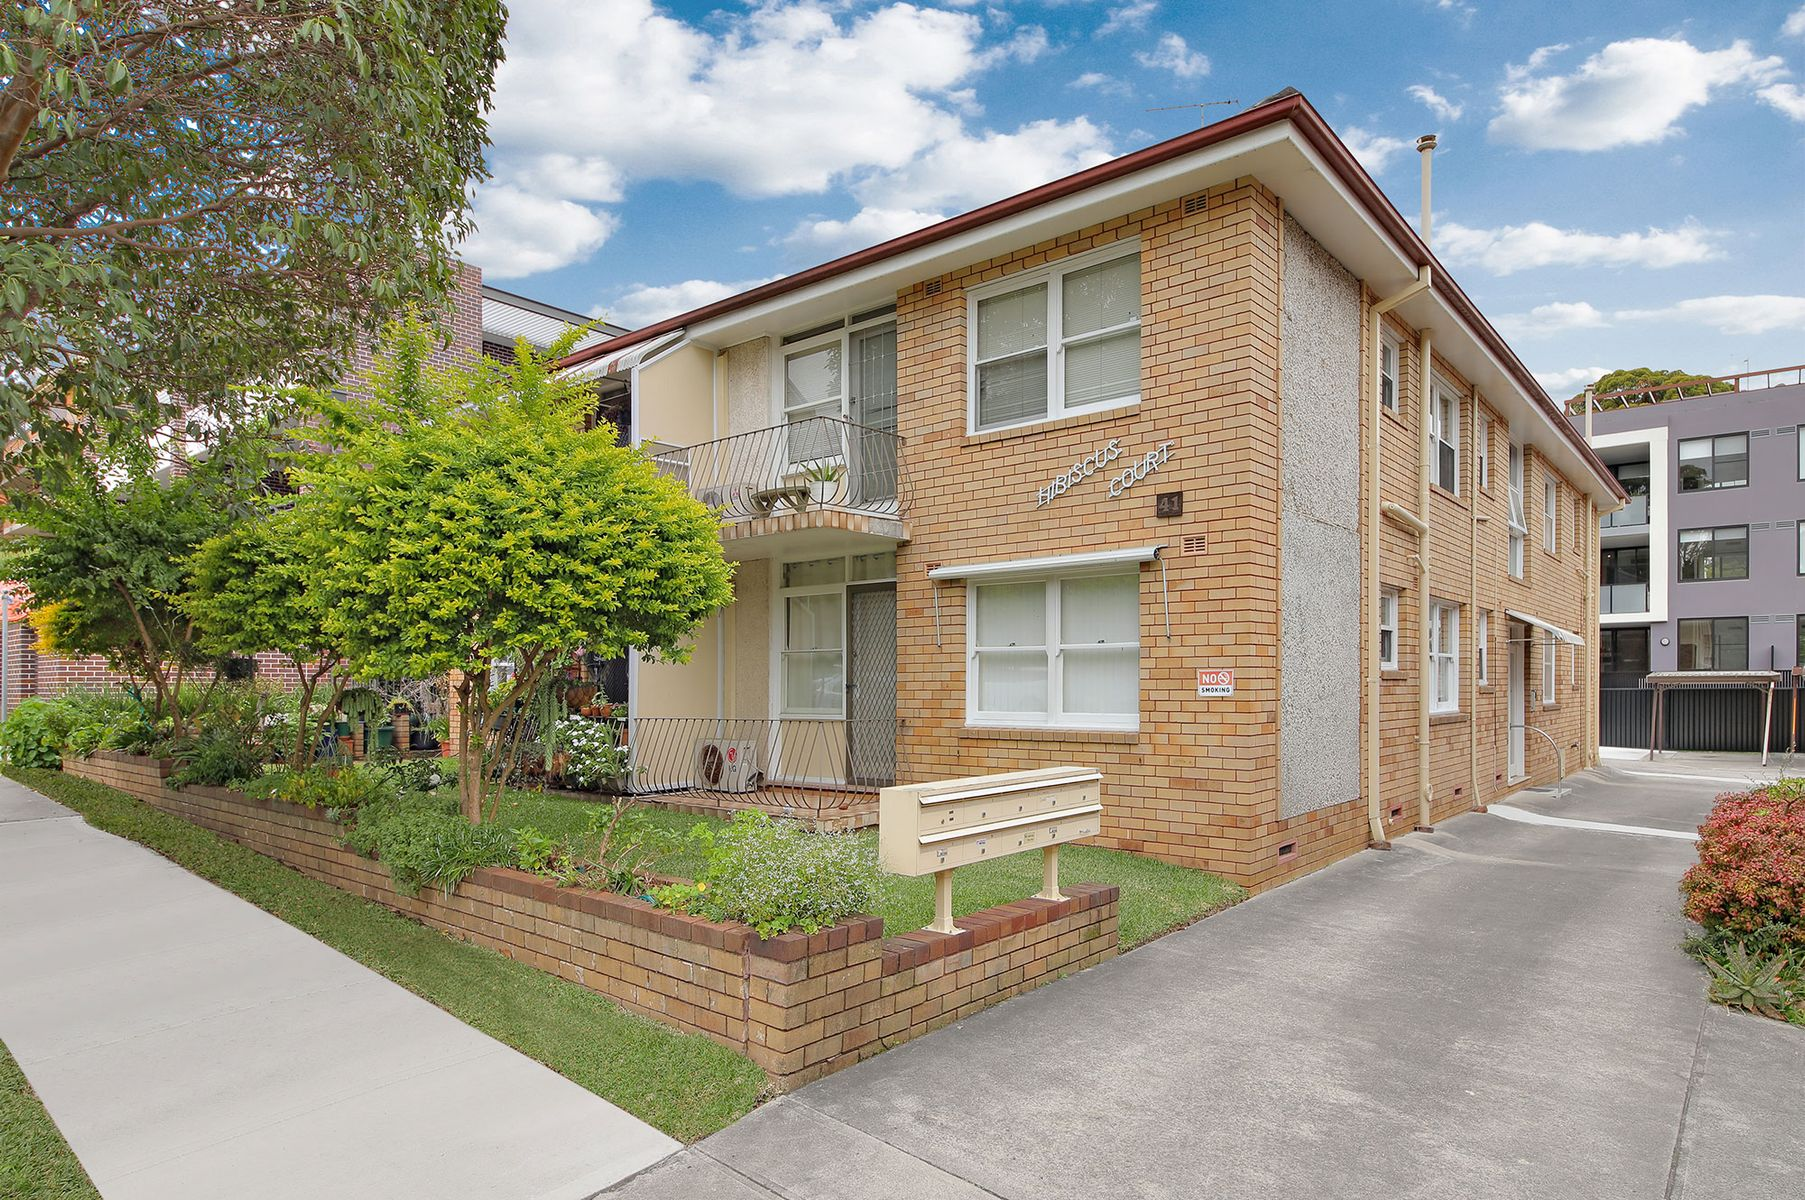 8/41 Macquarie Place, Mortdale, NSW 2223